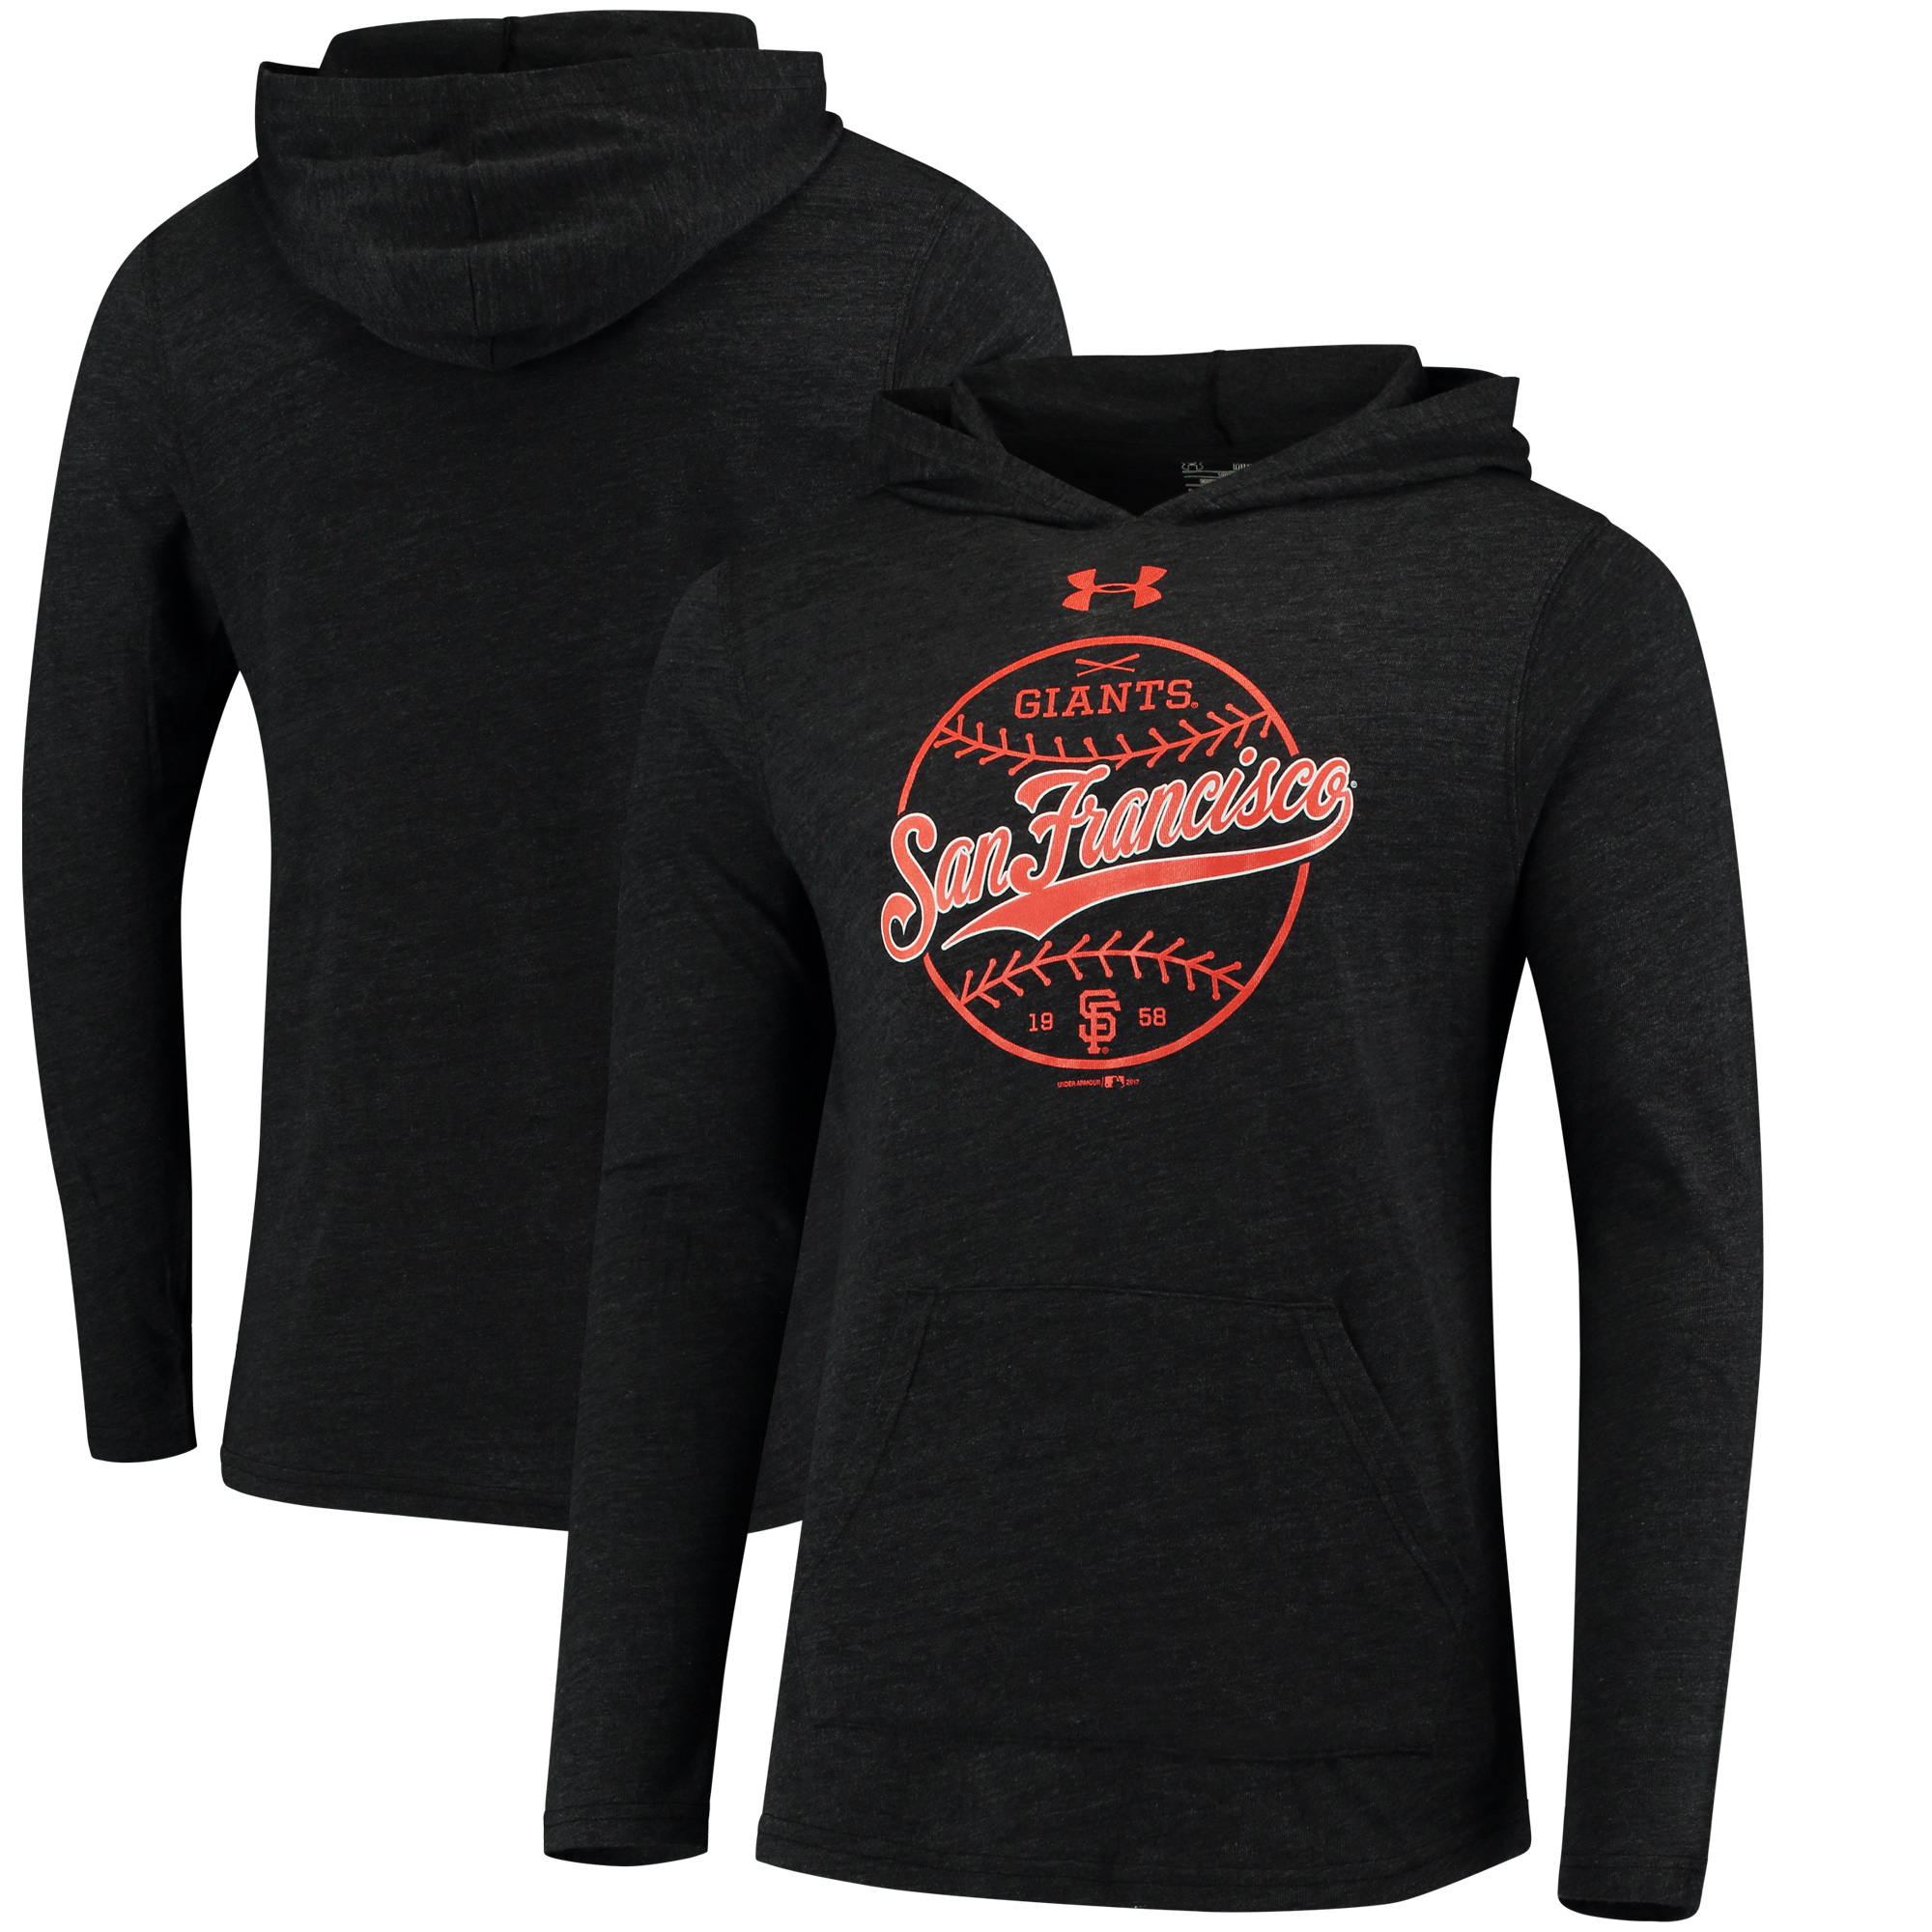 San Francisco Giants Under Armour Tri-Blend Pullover Hoodie - Black